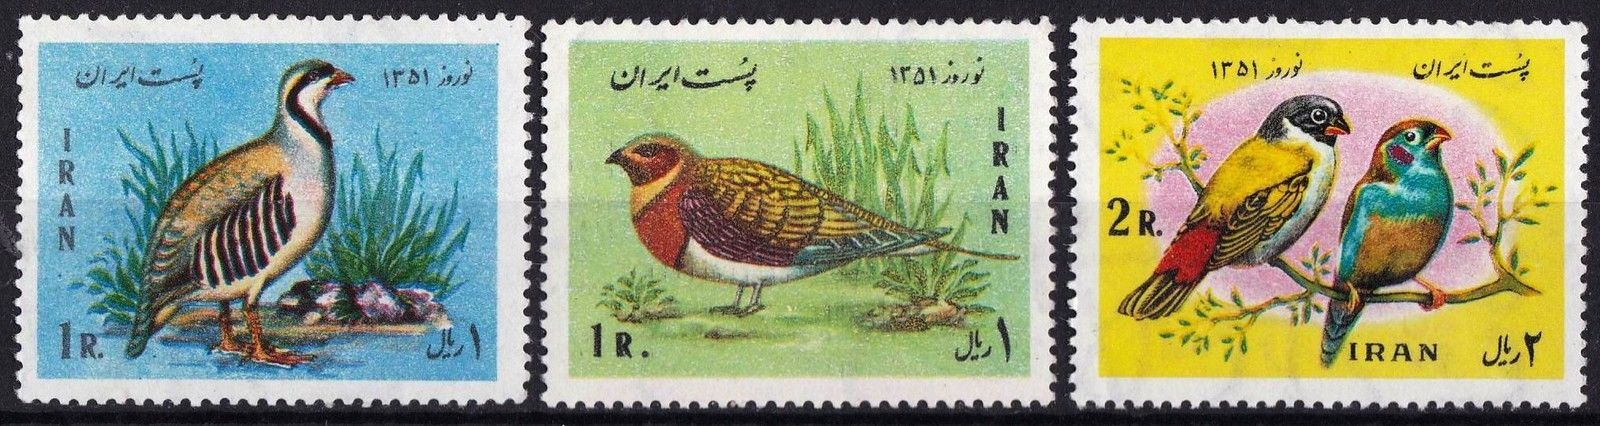 Iran 1972 Stamps Birds Complete Set MNH